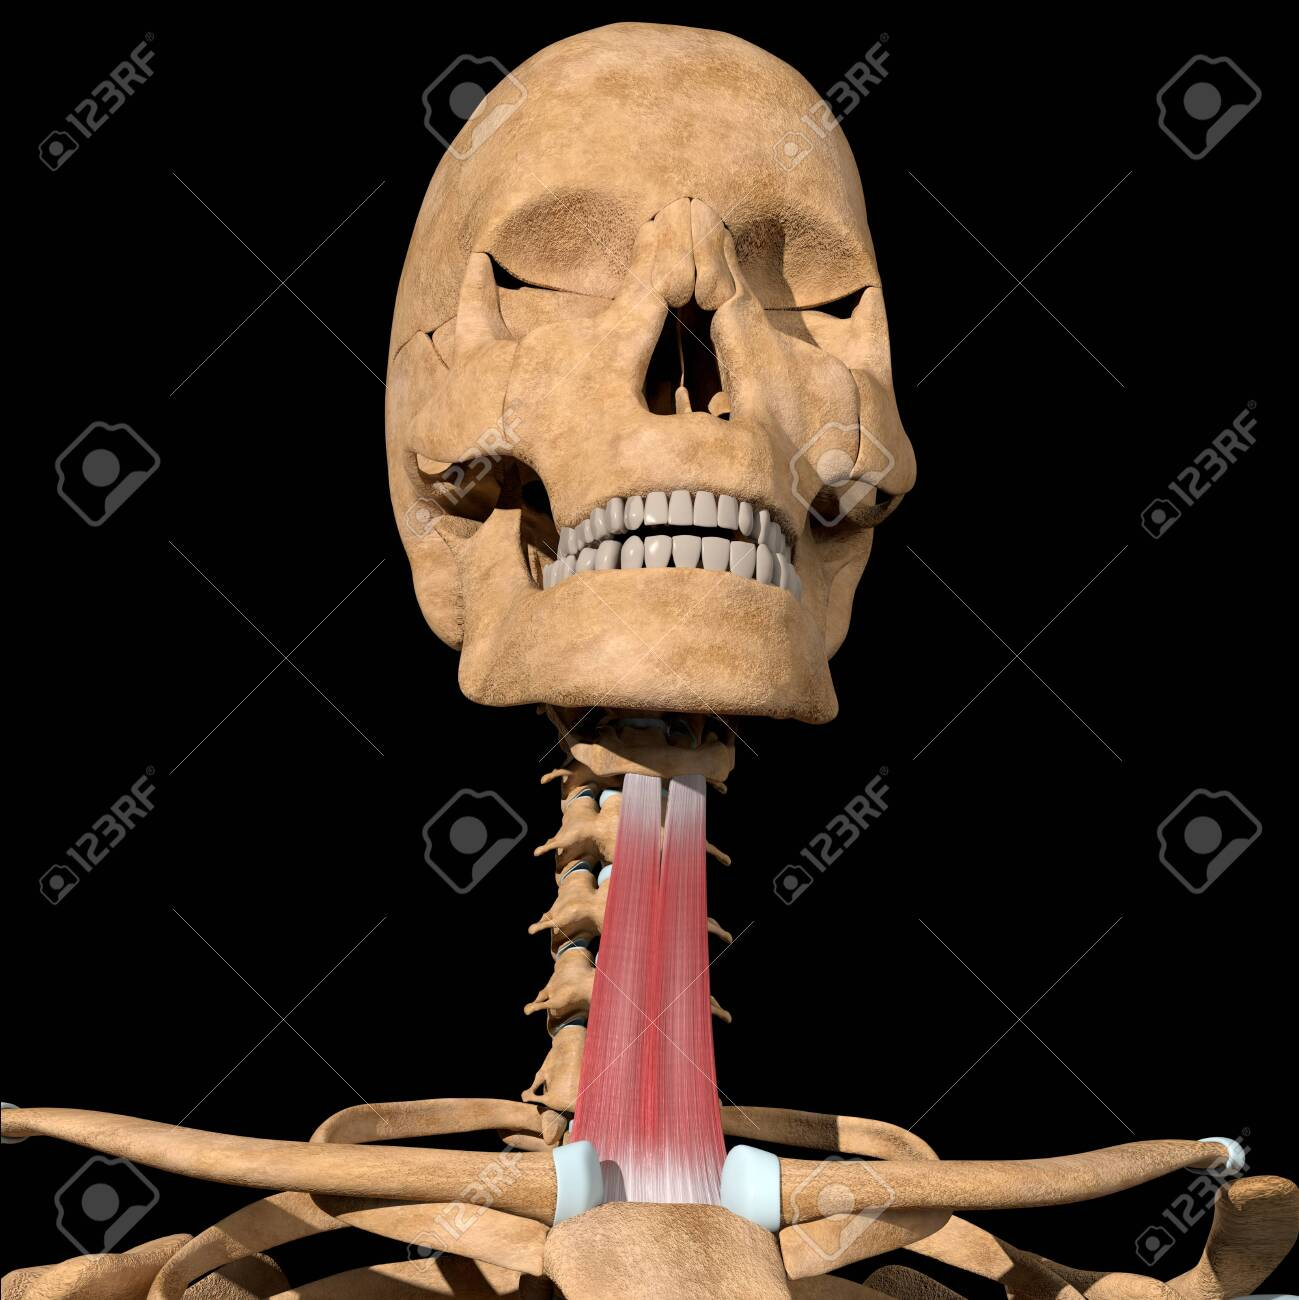 This 3d illustration shows the sternohyoid muscles on skeleton - 141540848